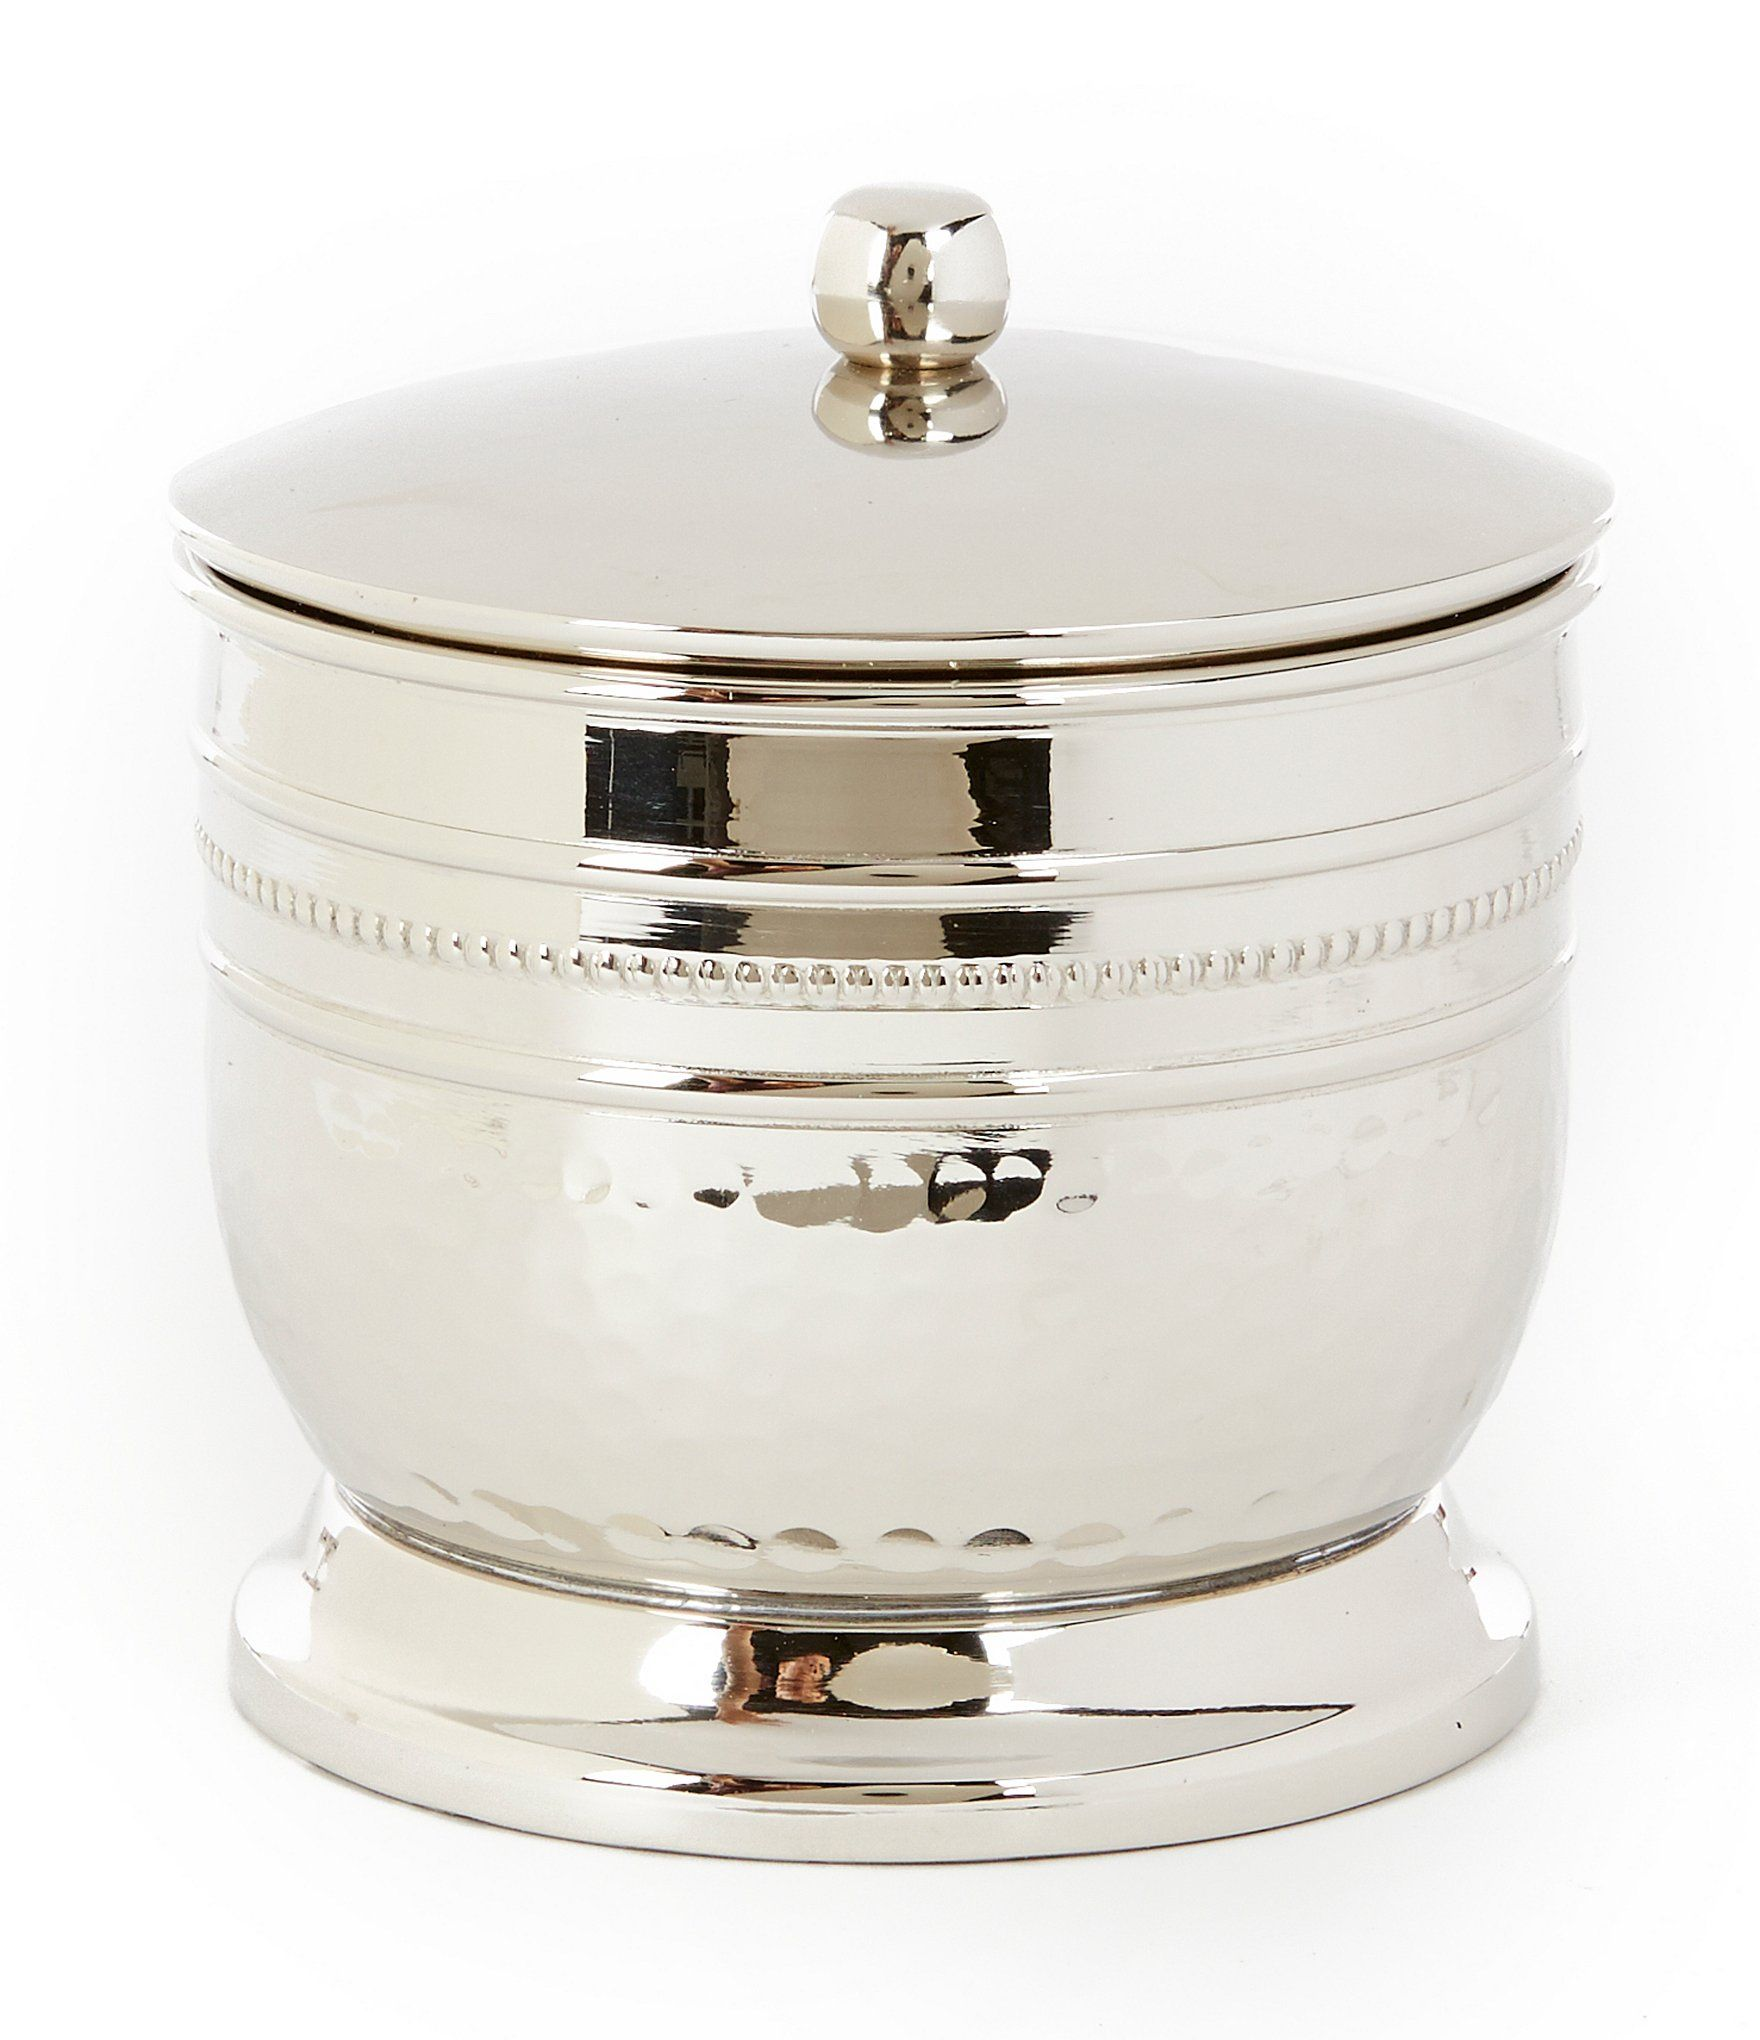 Southern Living Nickel-Plated Jar | Southern living, Southern and Jar